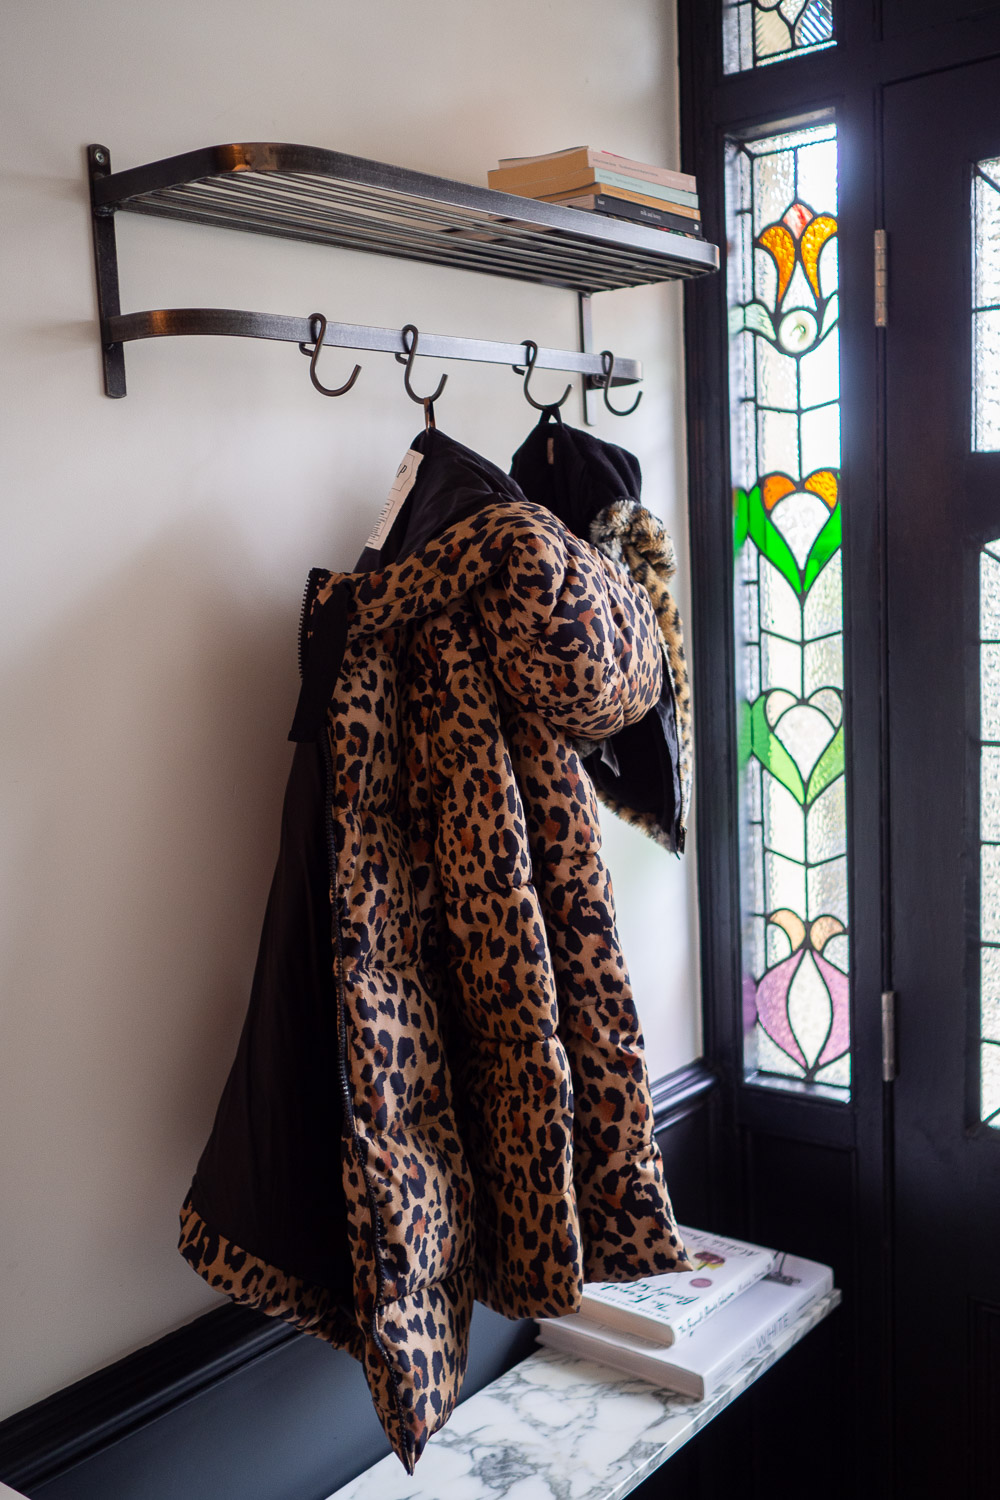 The Gap leopard puffer jacket and Gap baby leopard faux fur jacket hanging in the hallway.